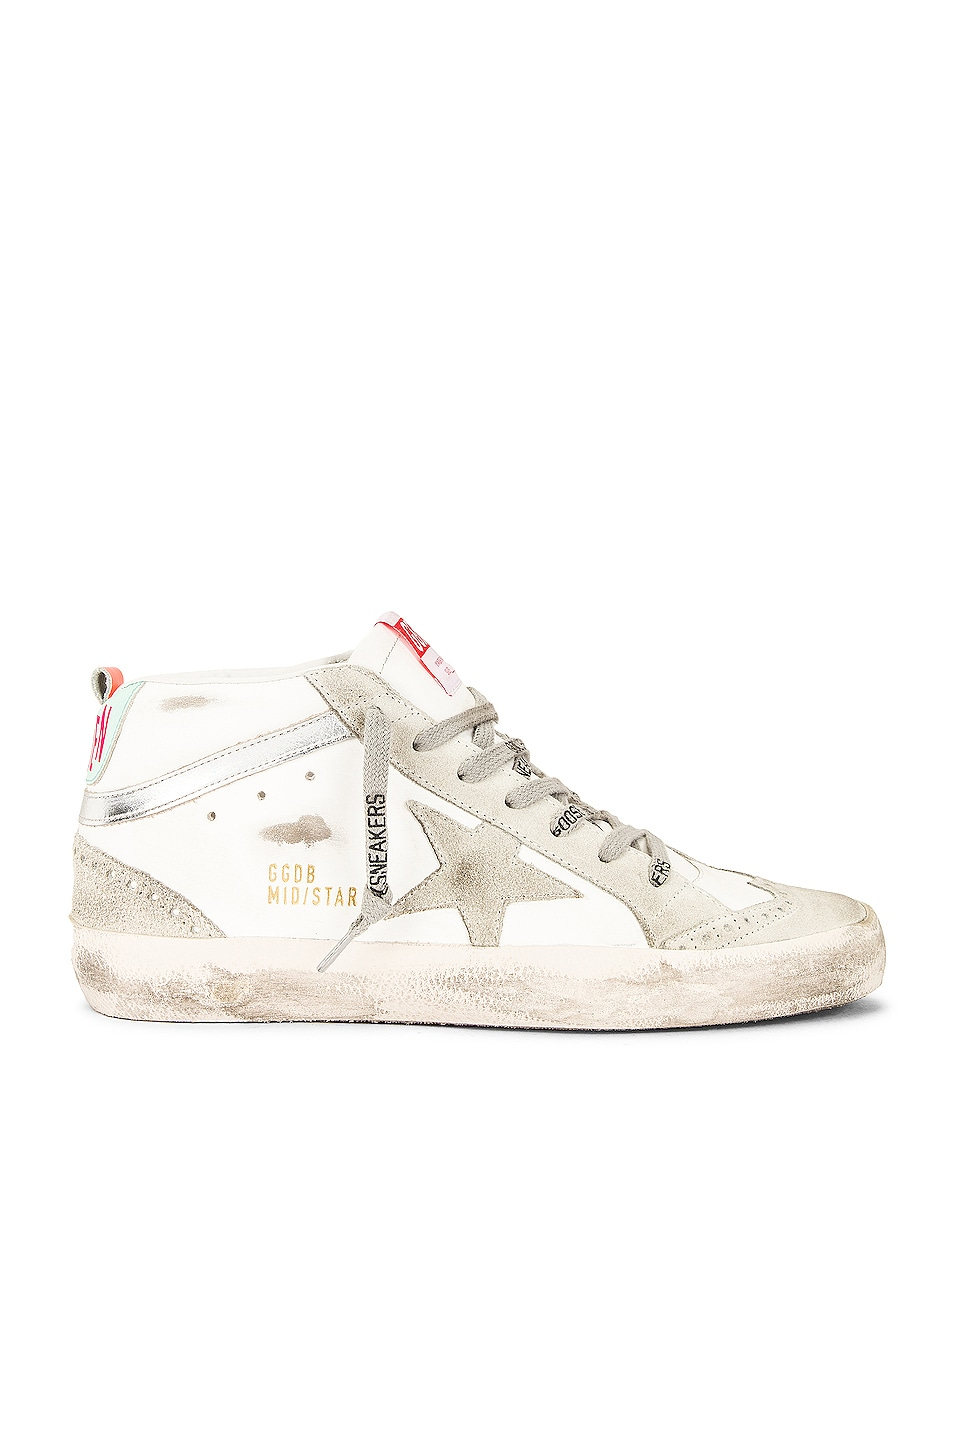 Image 1 of Golden Goose Mid Star Sneaker in White, Ice, Silver & Turquoise